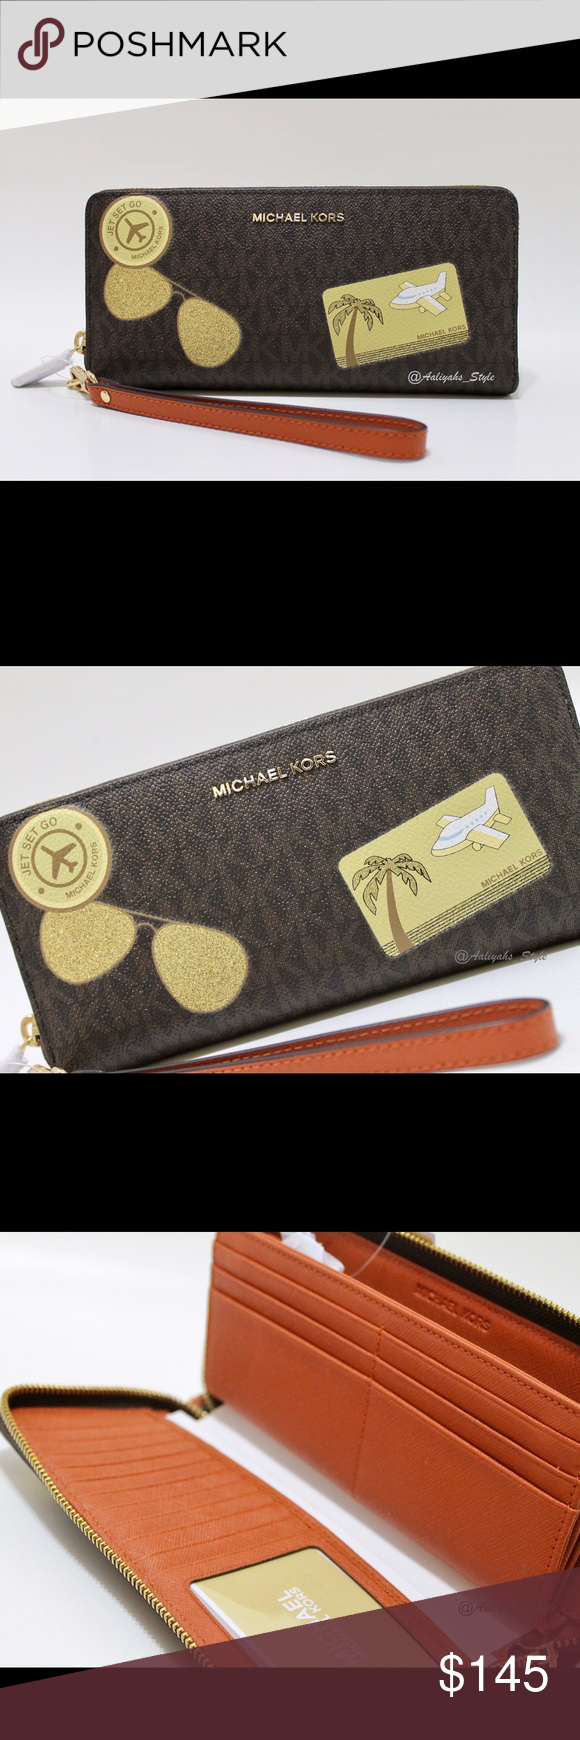 bc9ce7161e96 Michael Kors Illustrations Fly Away Travel Wallet MICHAEL Michael Kors  Illustrations Fly Away Travel Continental Wallet 100% Authentic Color: Brown  / Orange ...